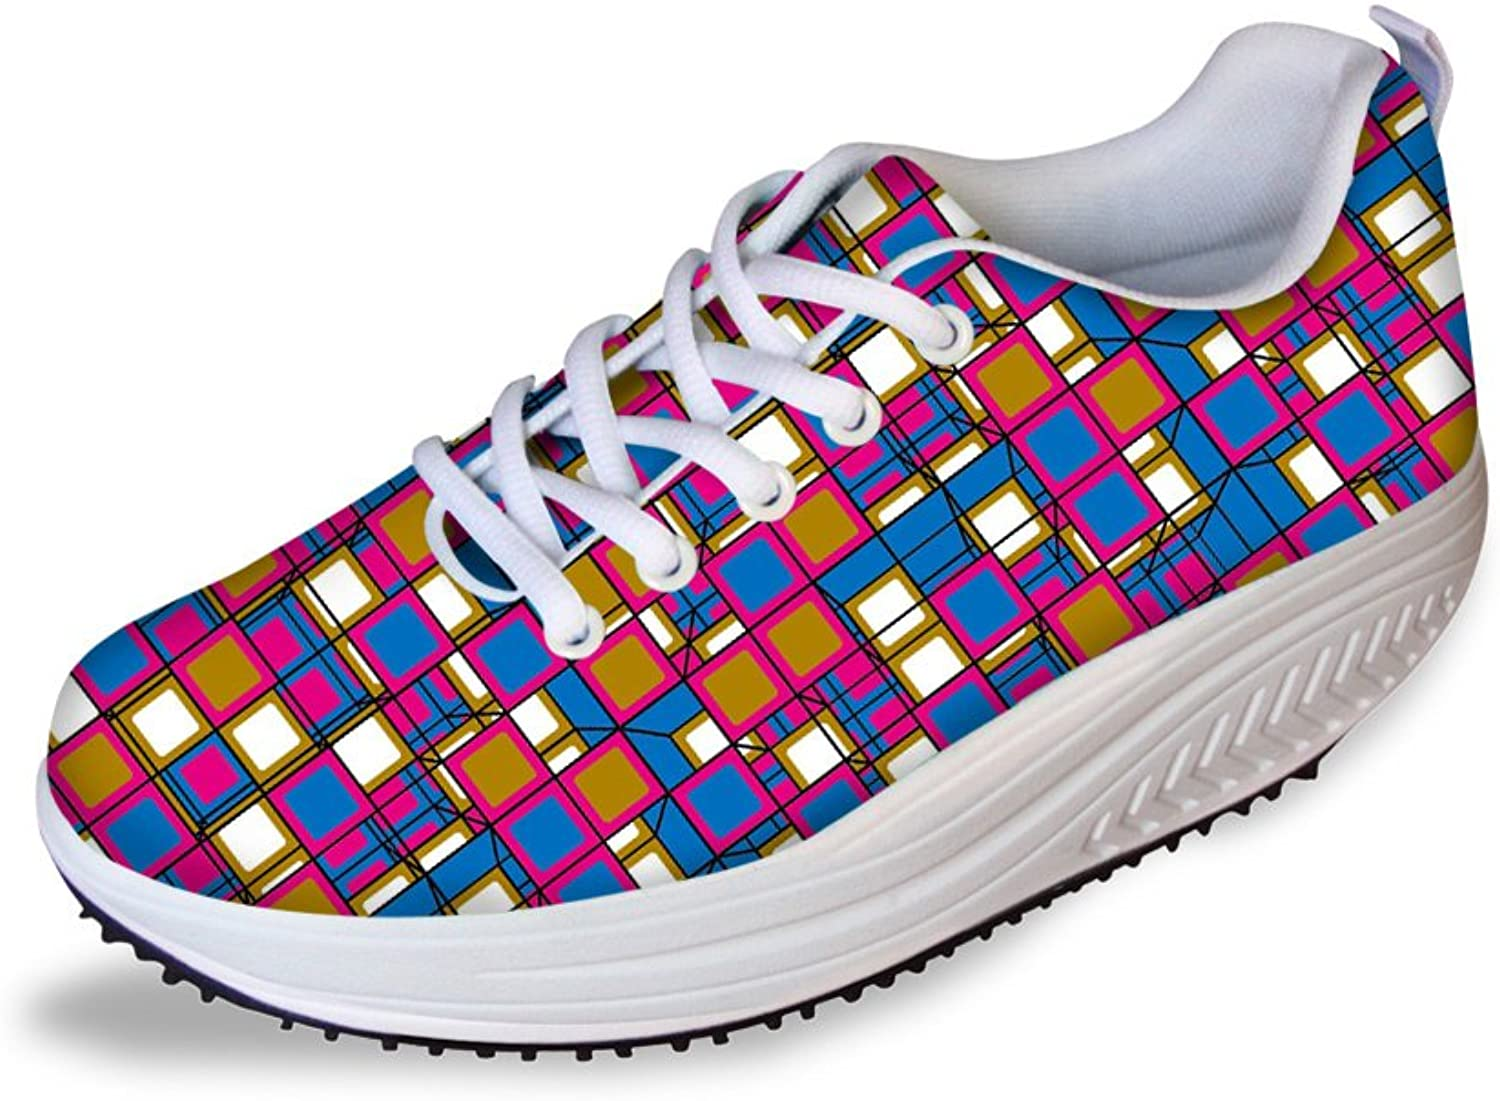 Classic colorful Air Mesh Platform Toning shoes Fitness Work Out Sneakers for Women